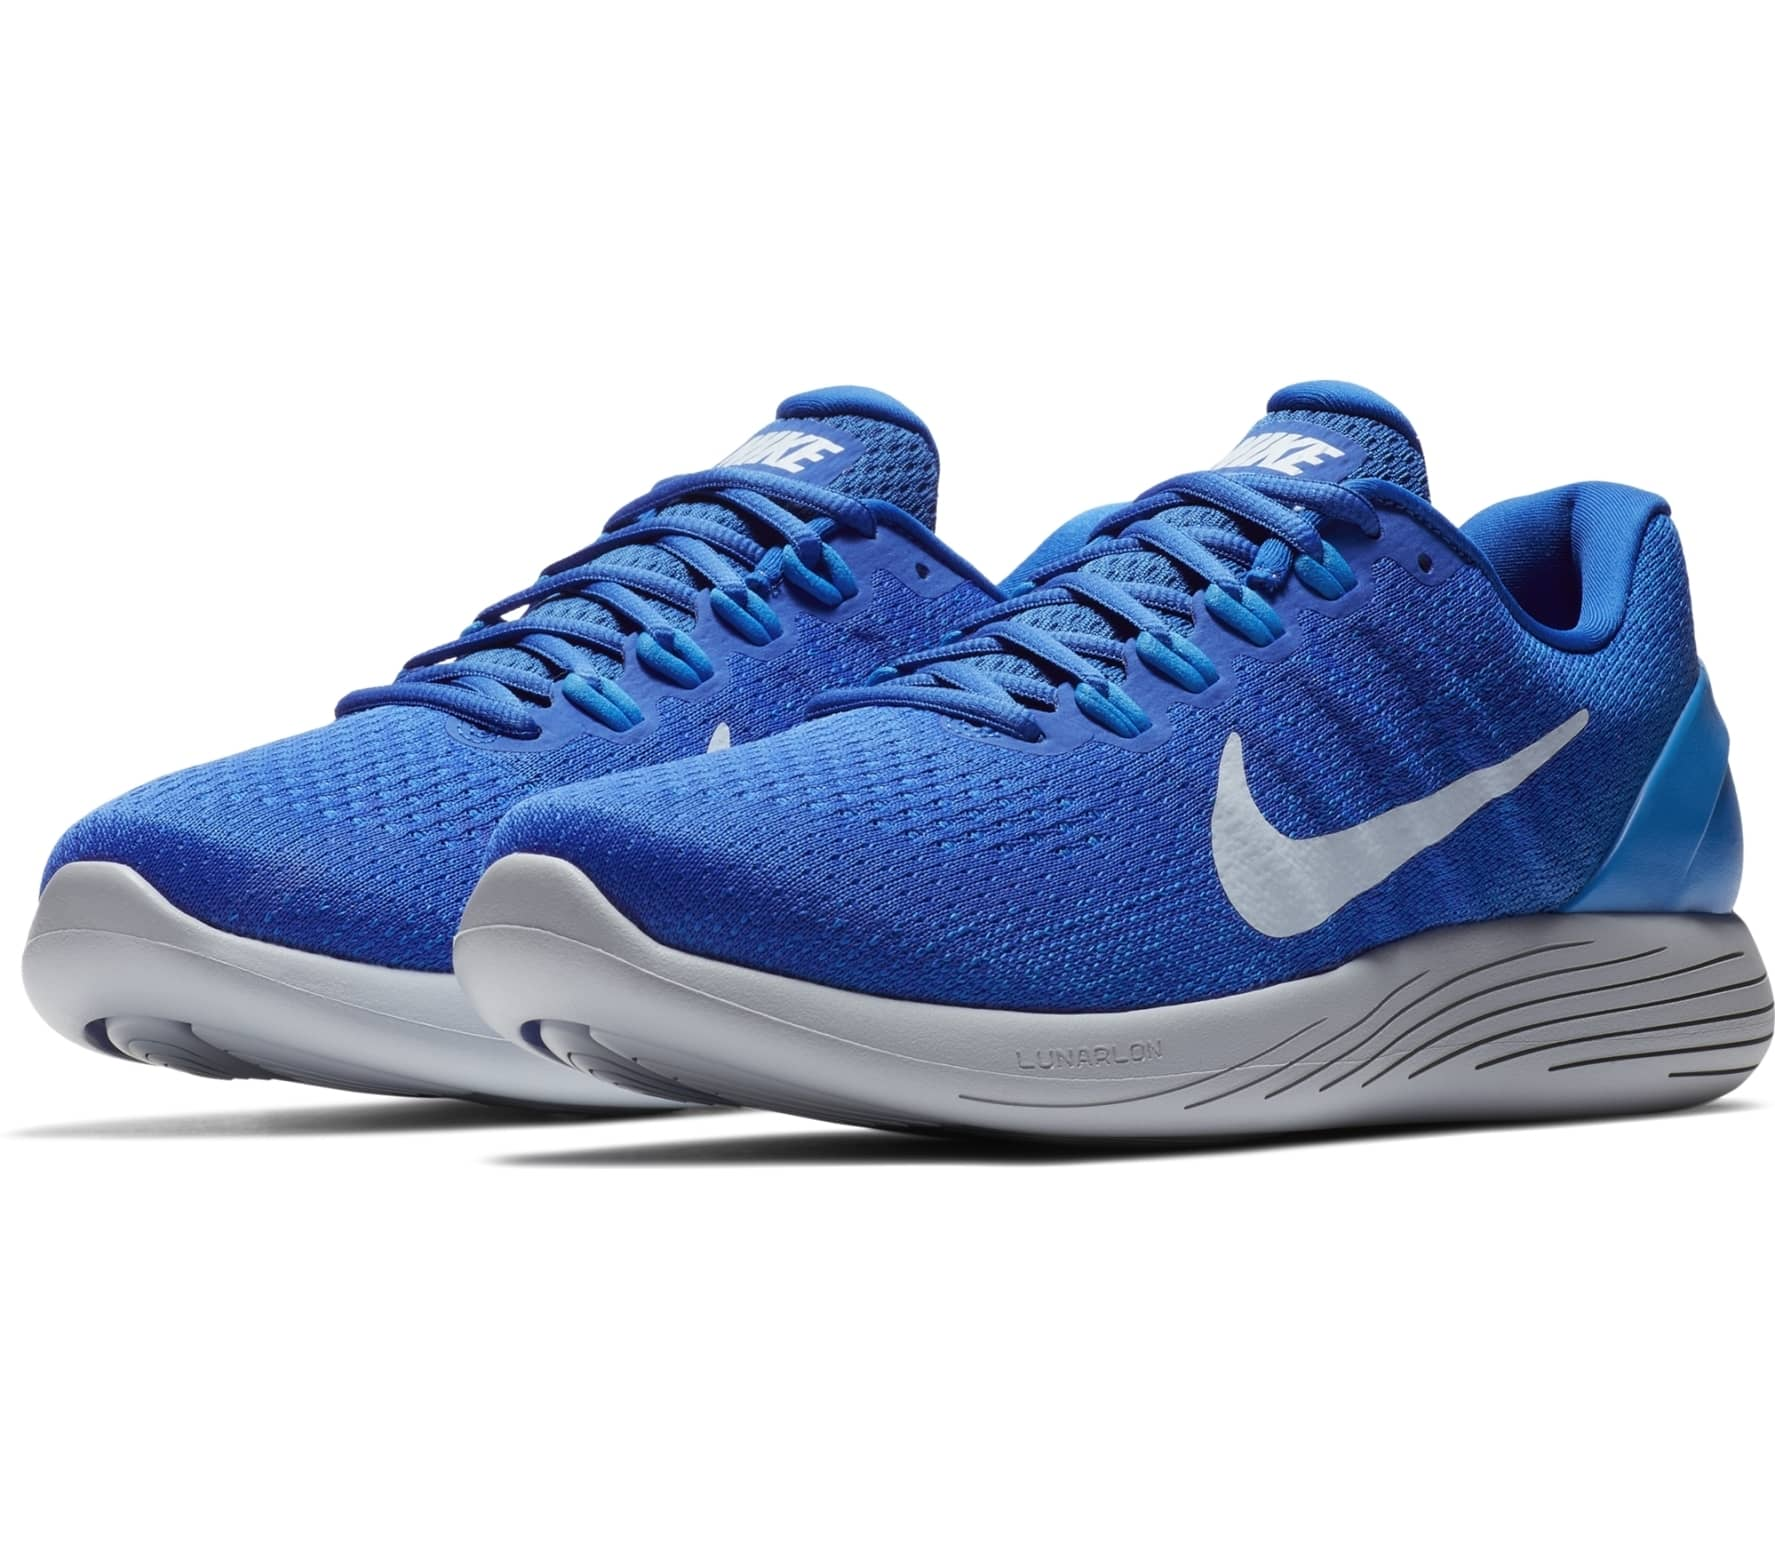 designer fashion 01922 24f3d ireland comfortable nike lunarglide 7 mens 04028 91b1c  authentic nike  lunarglide 9 mens running shoes blue white b05c7 d8fc8